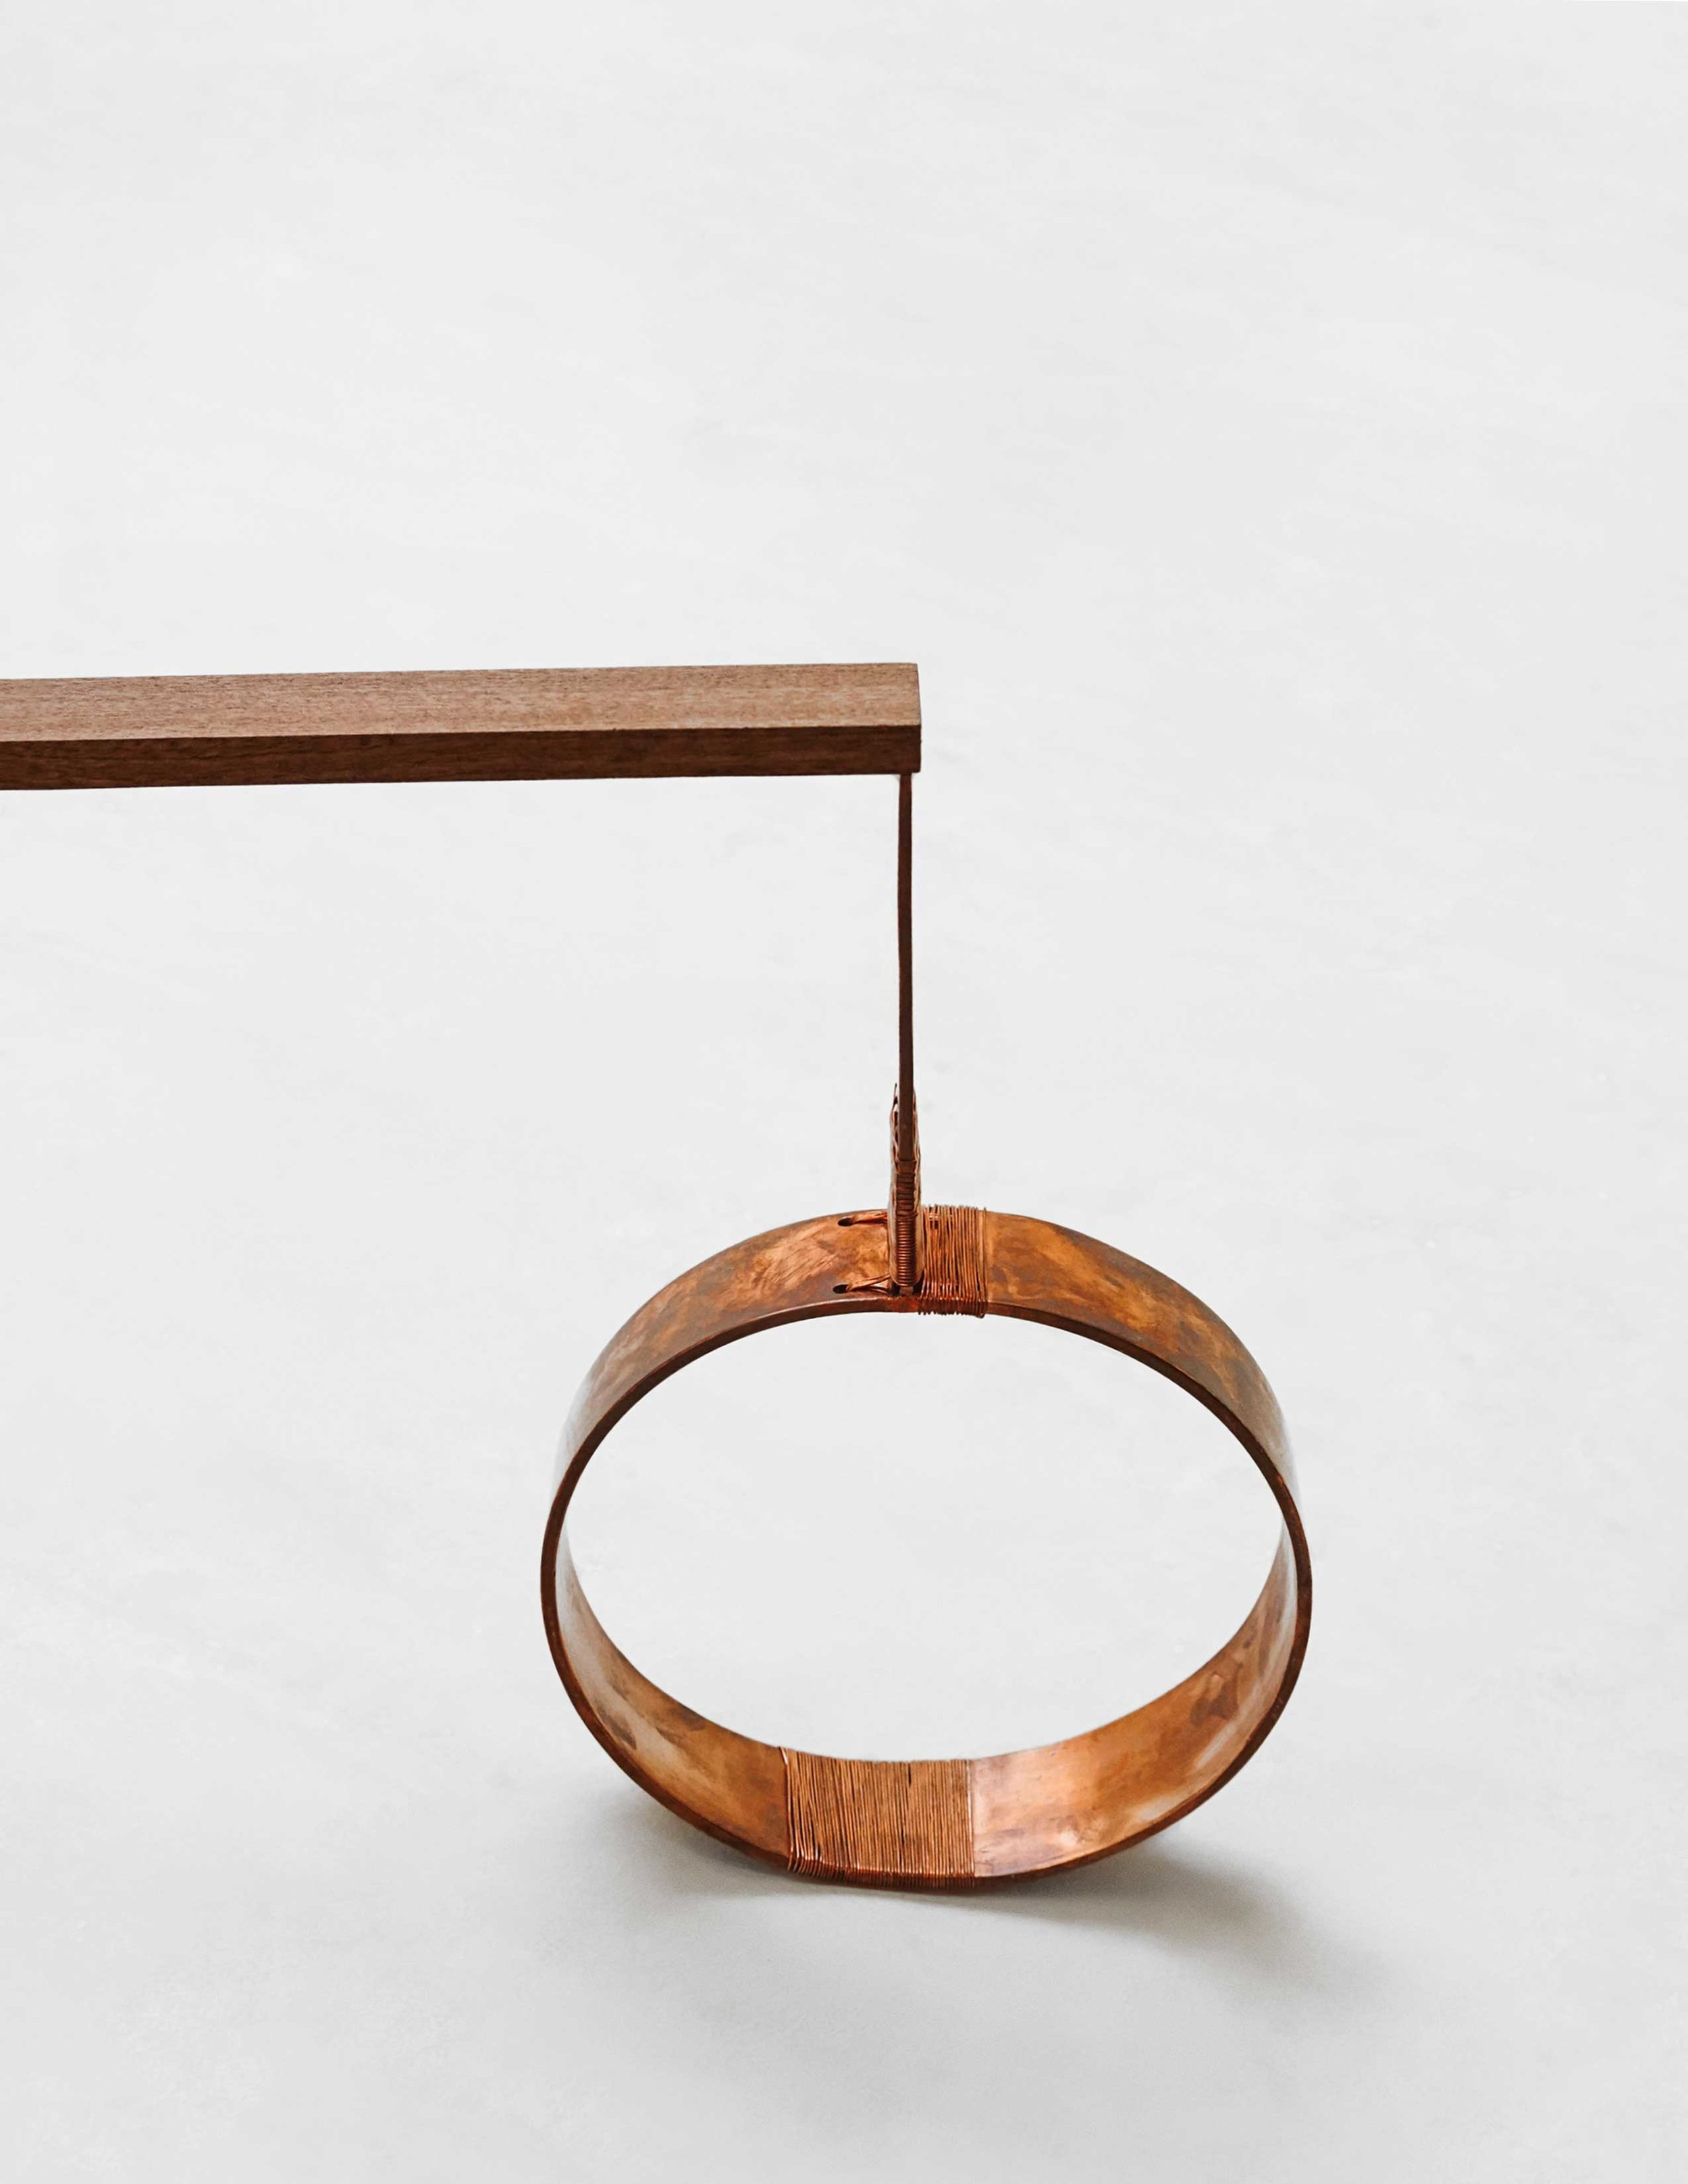 Detail - Copper Shank + Weighting Bowl